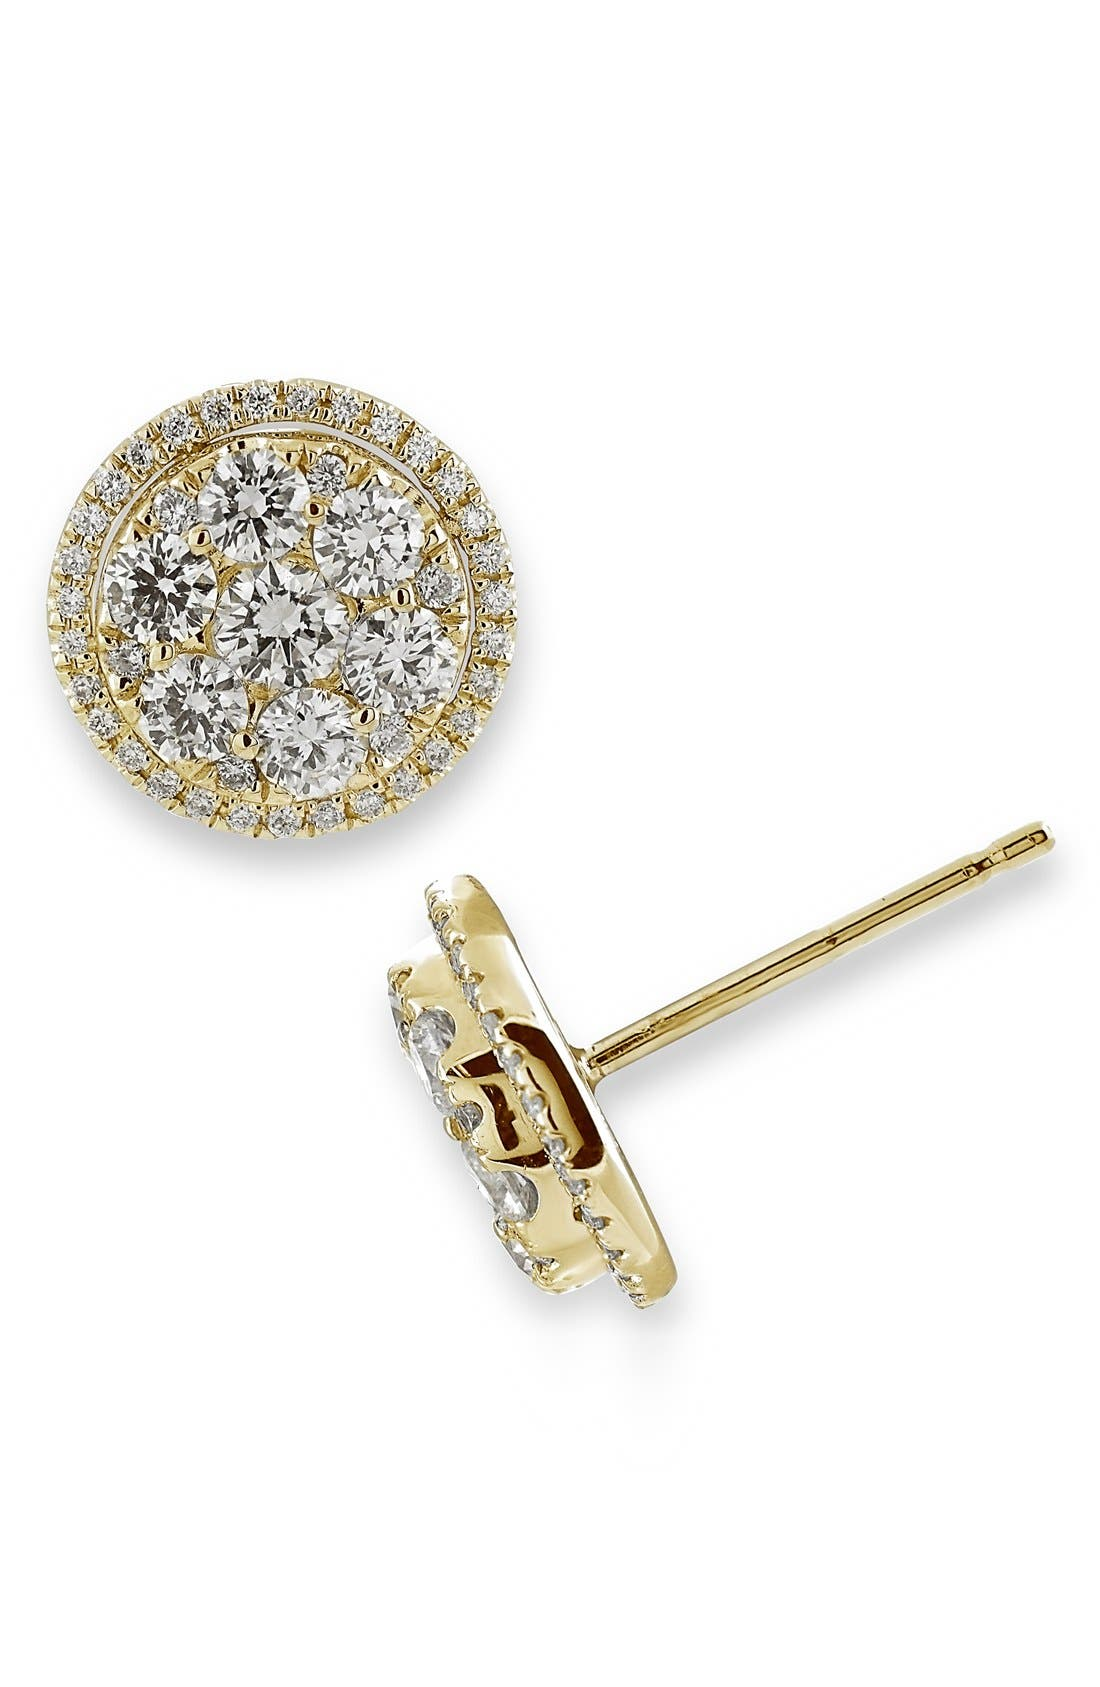 Alternate Image 1 Selected - Bony Levy 'Mika' Round Halo Diamond Stud Earrings (Nordstrom Exclusive)